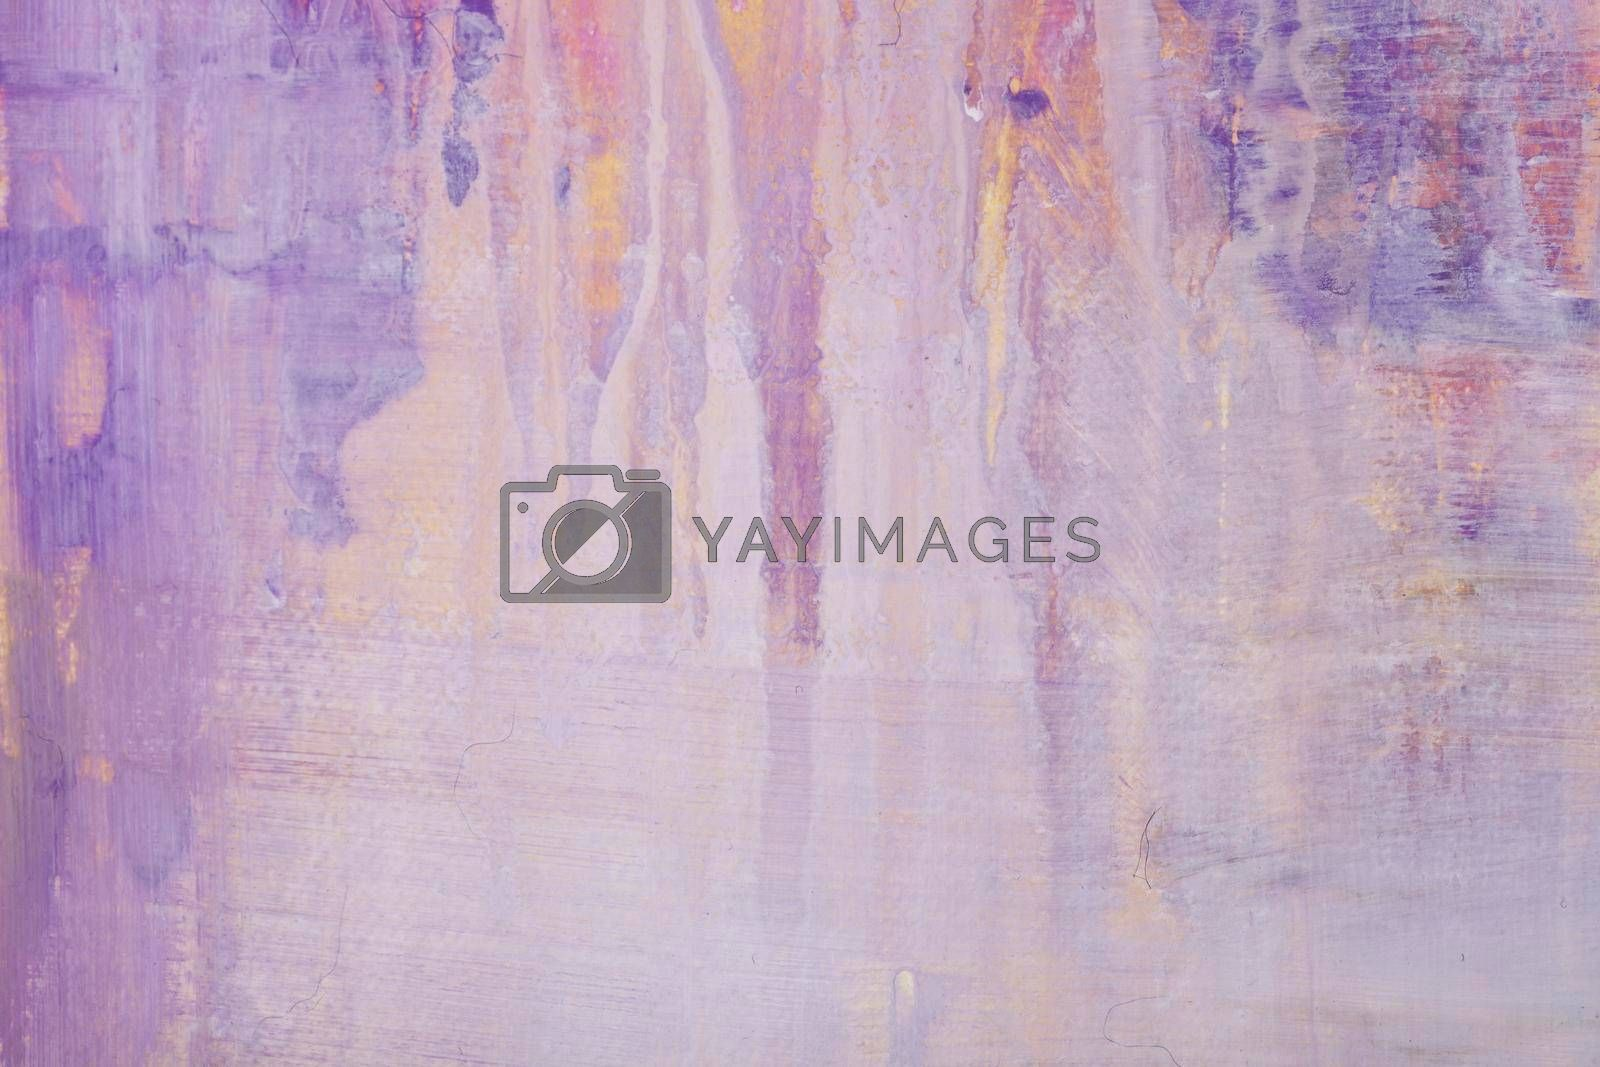 Multicolor abctract painting background. Abstract painting pink and puprle shades colorful texture. Modern futuristic pattern. Artwork for creative graphic design.